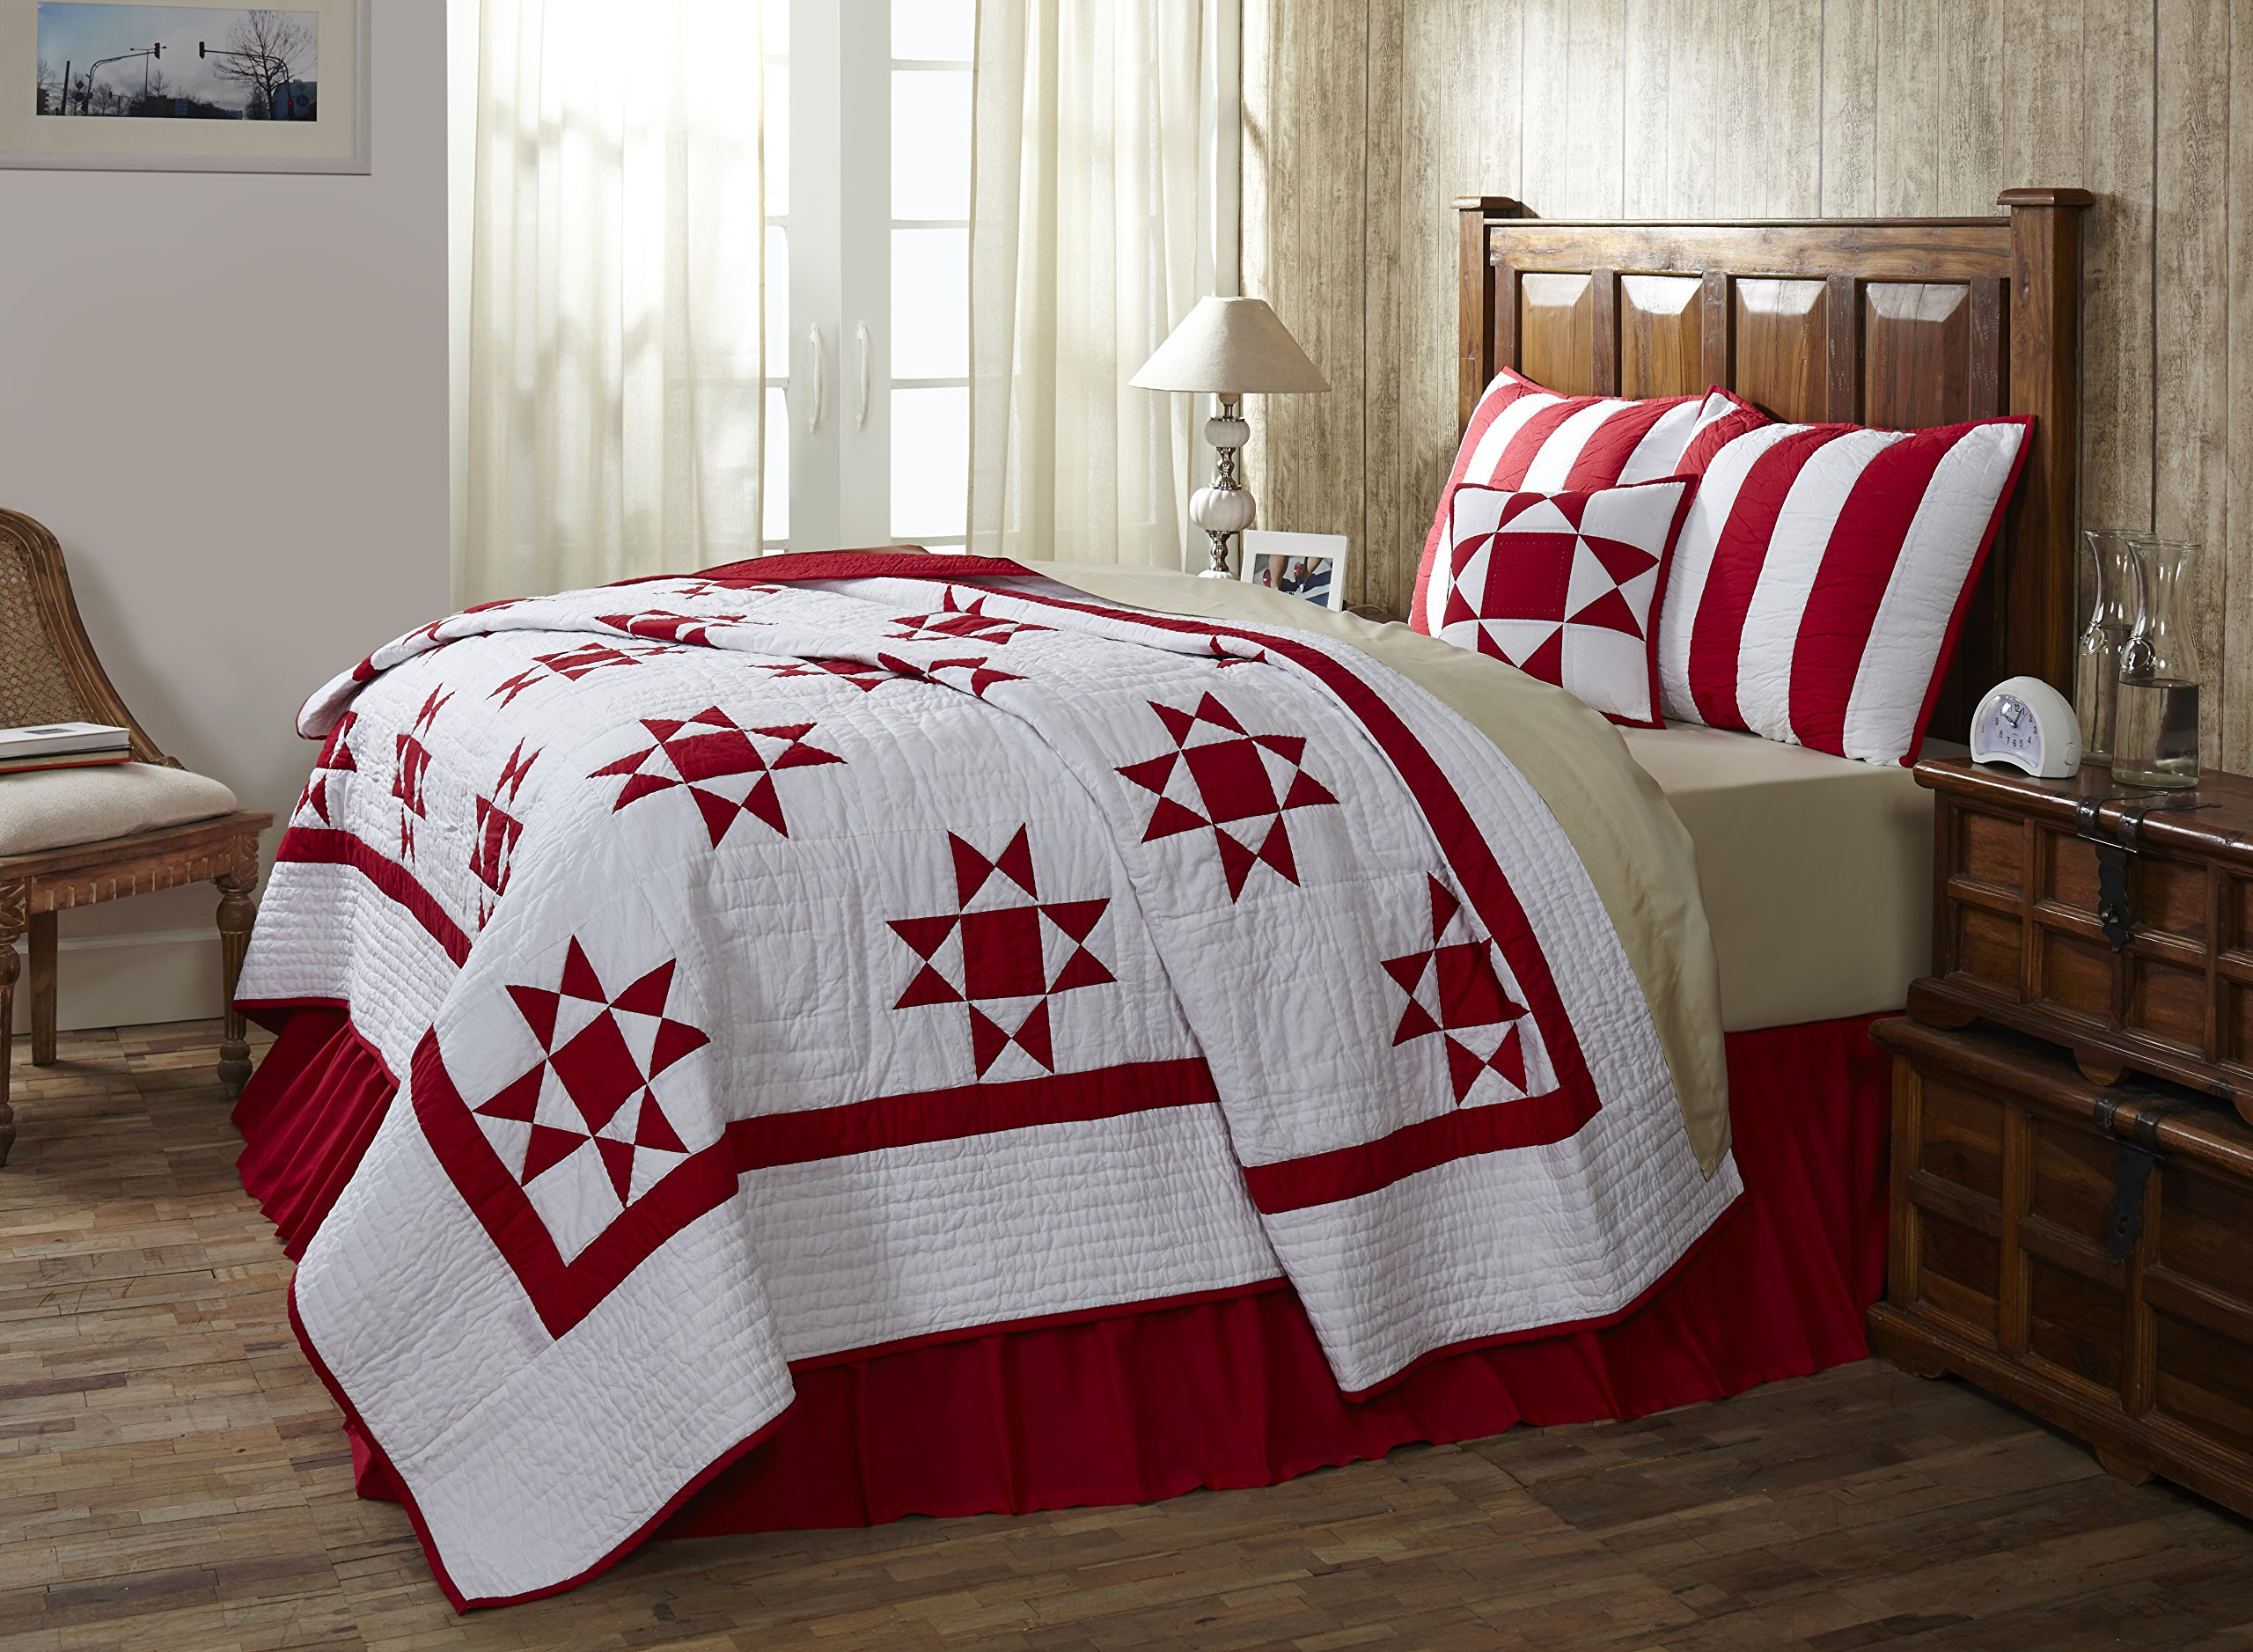 queen size quilt chili pepper red and white bedding cotton 94 x 94 ebay. Black Bedroom Furniture Sets. Home Design Ideas